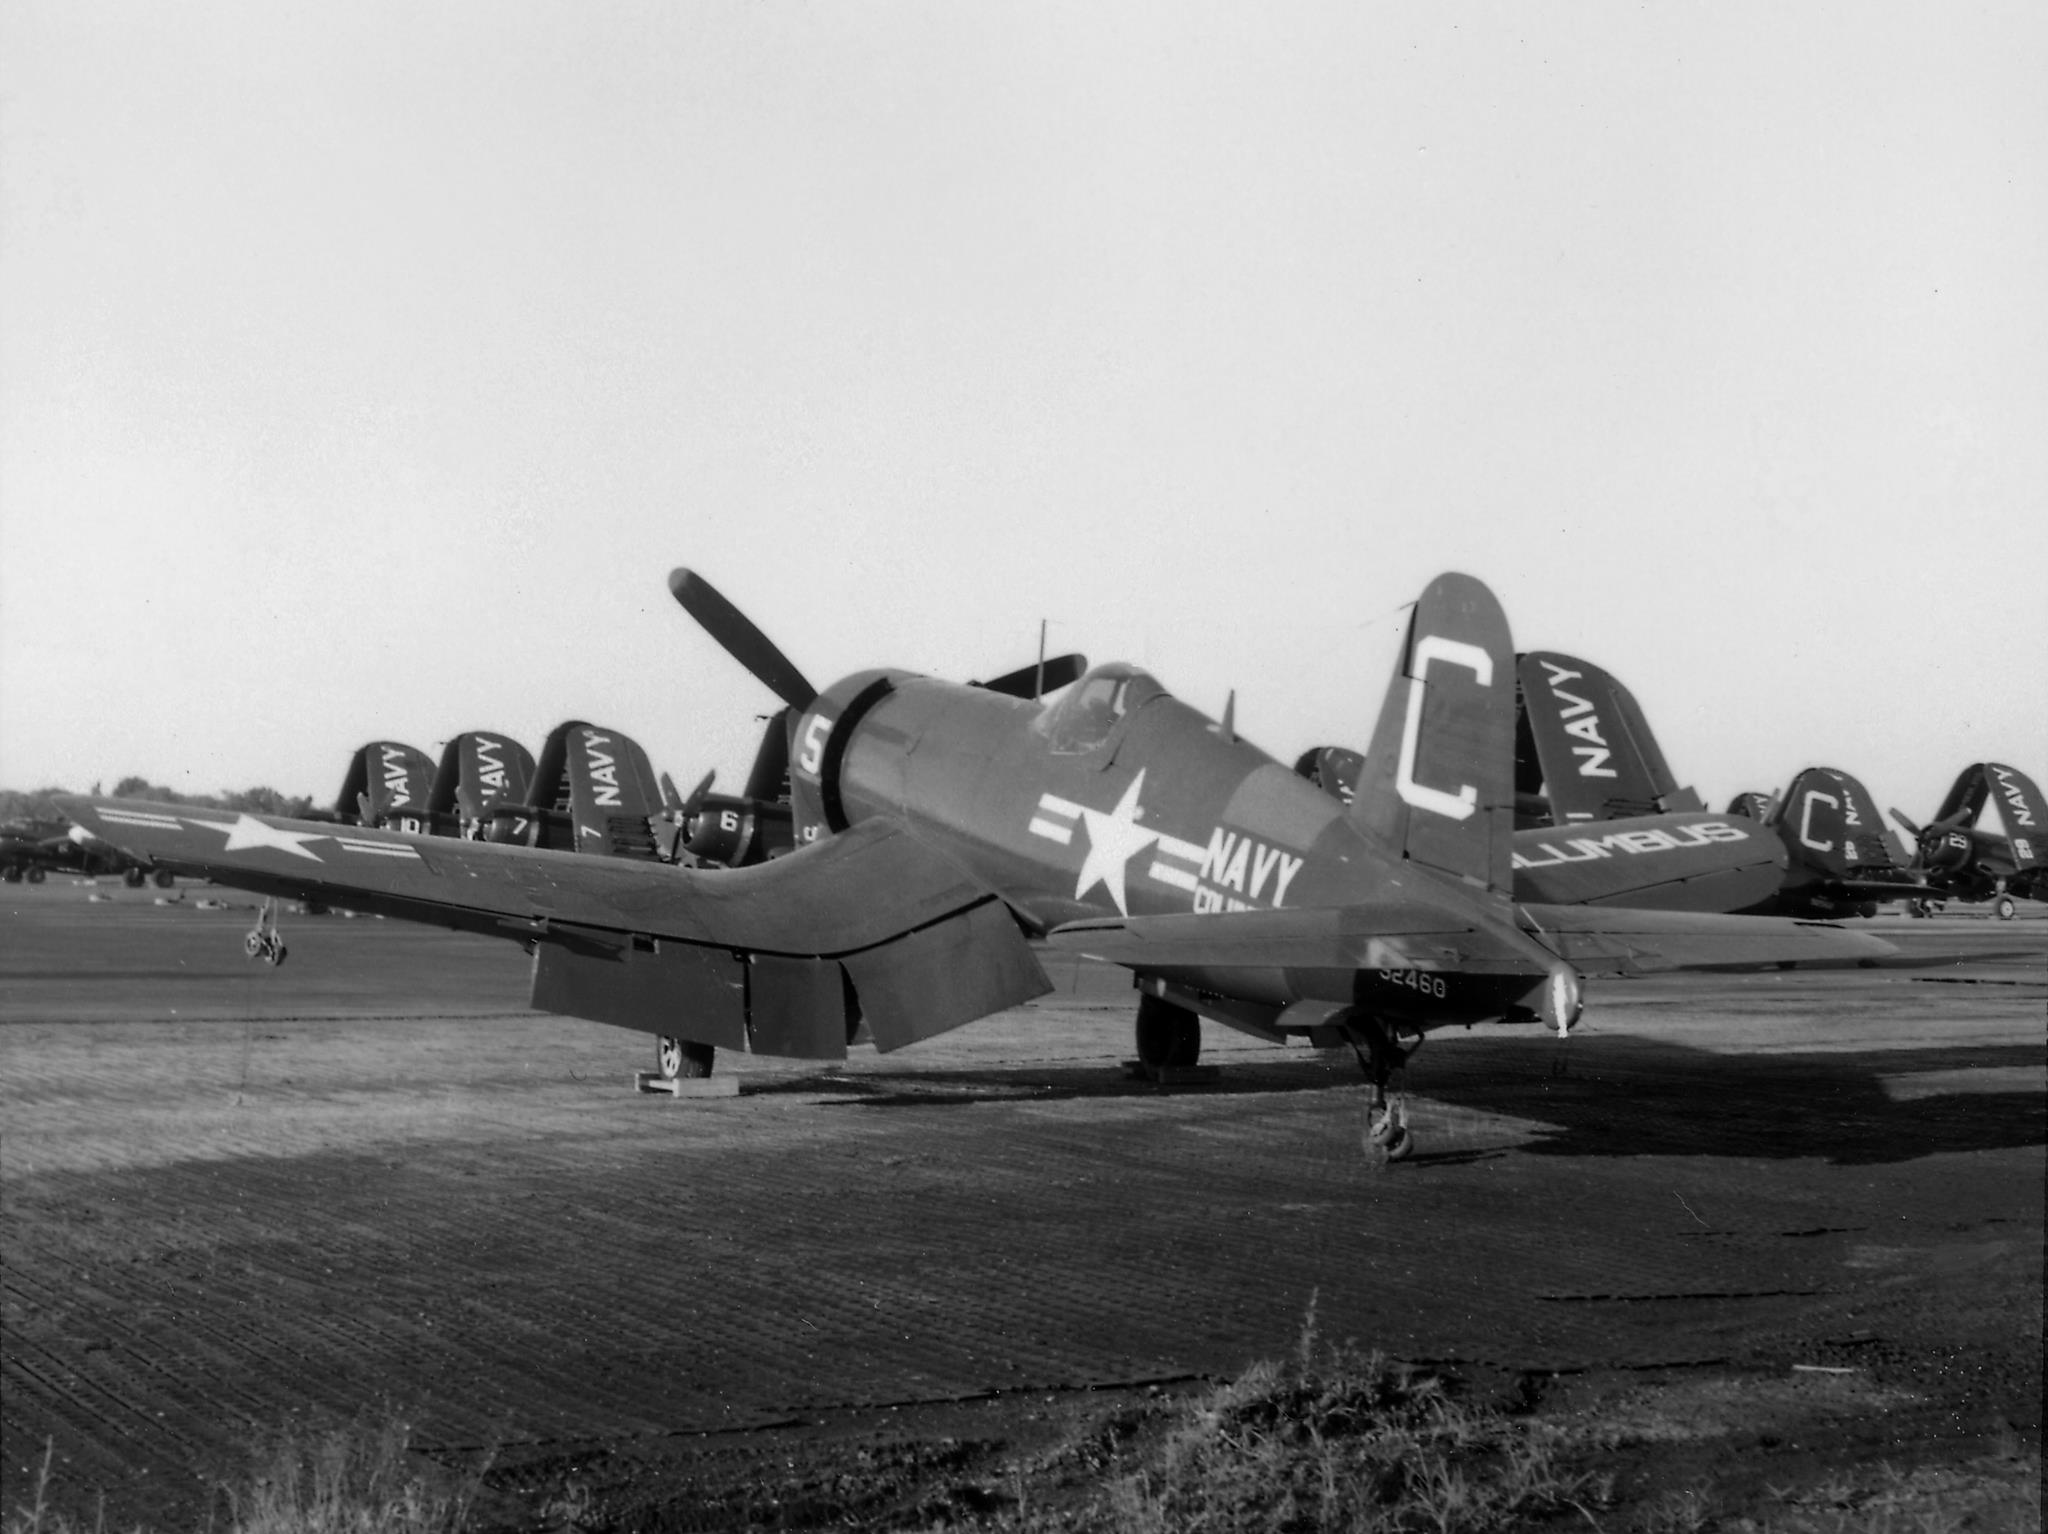 CASC's Corsair 92460 during her days with the Naval Reserve in Columbus, Ohio. (photo via CASC)